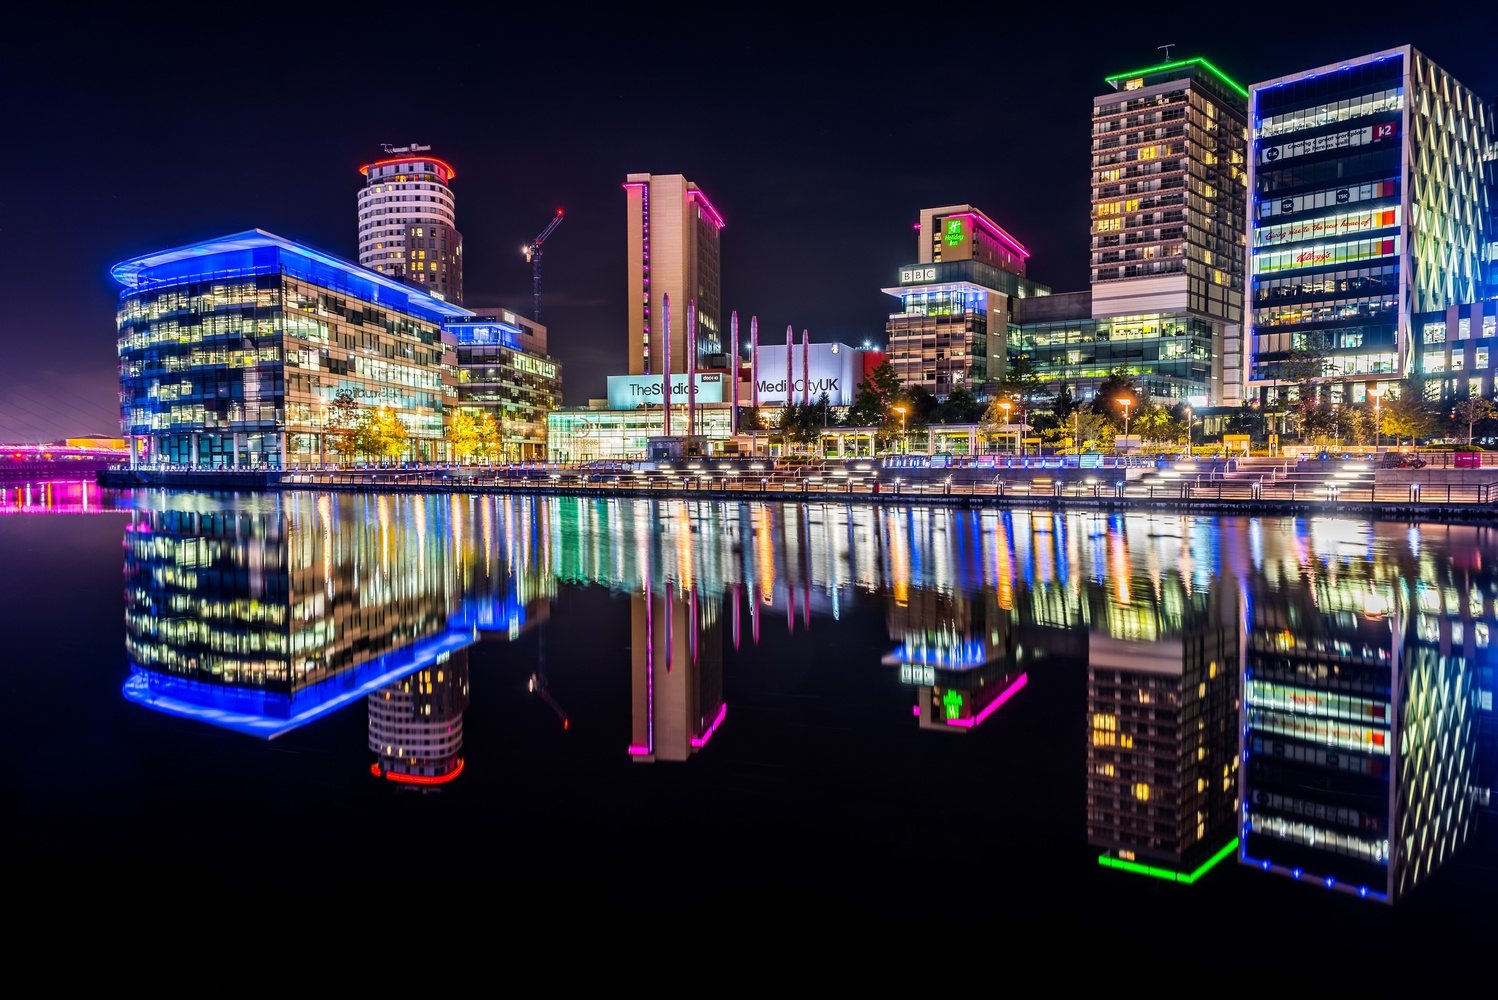 Media City at night by Damien Harrison